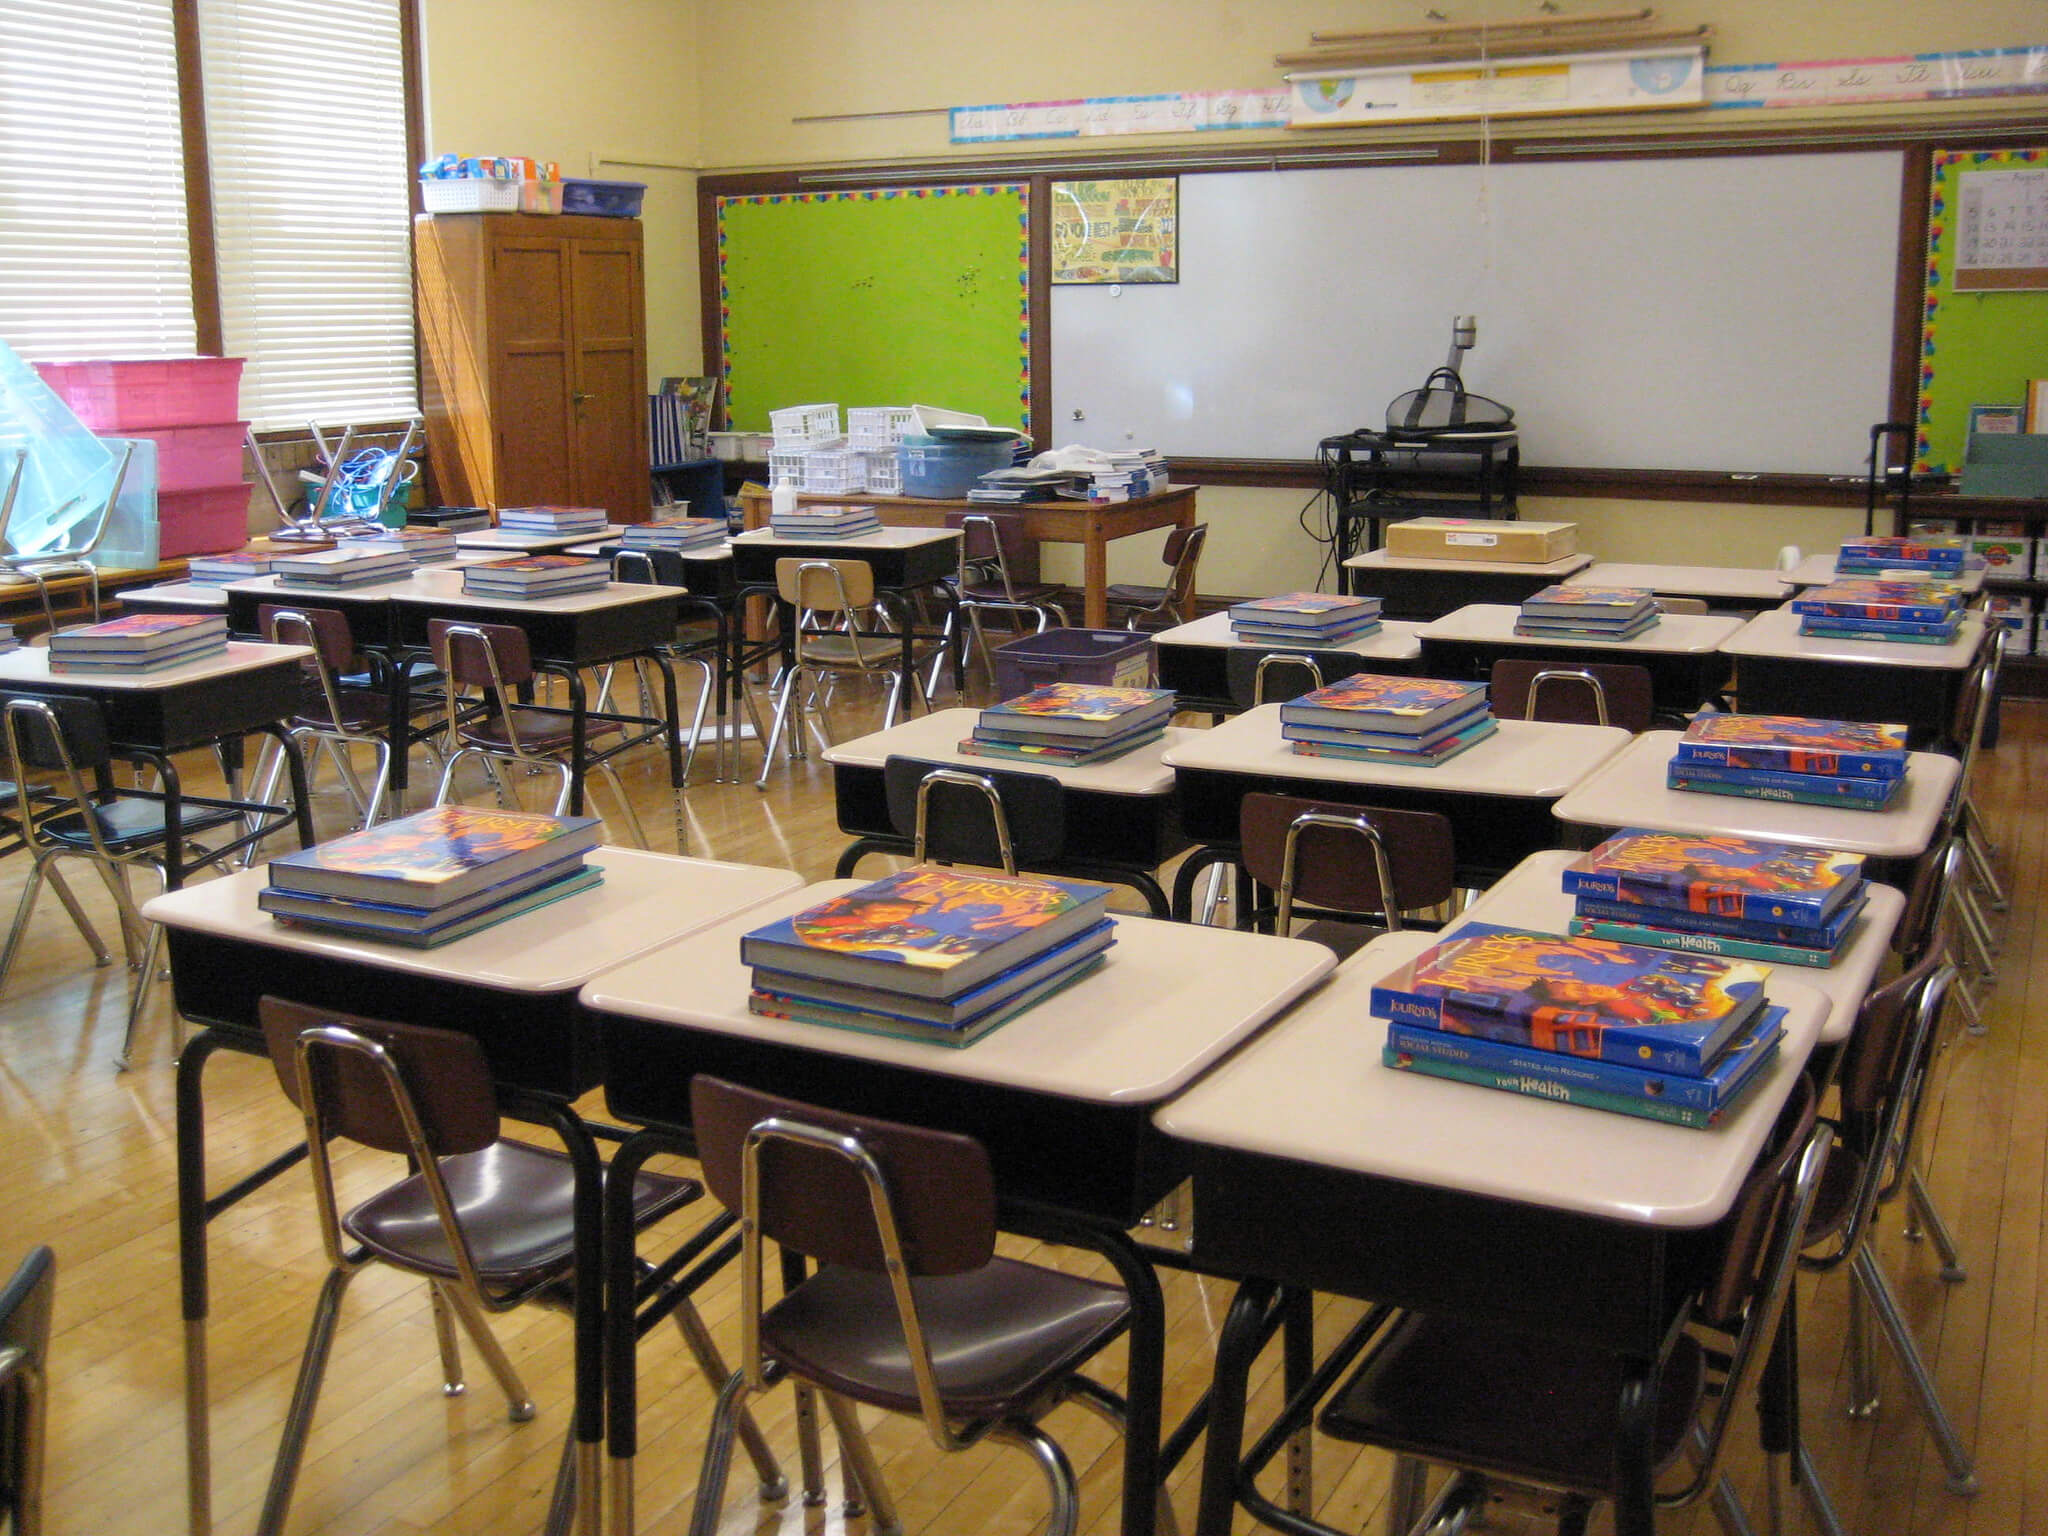 Try out and test new classroom setups, lesson structures and class activities.